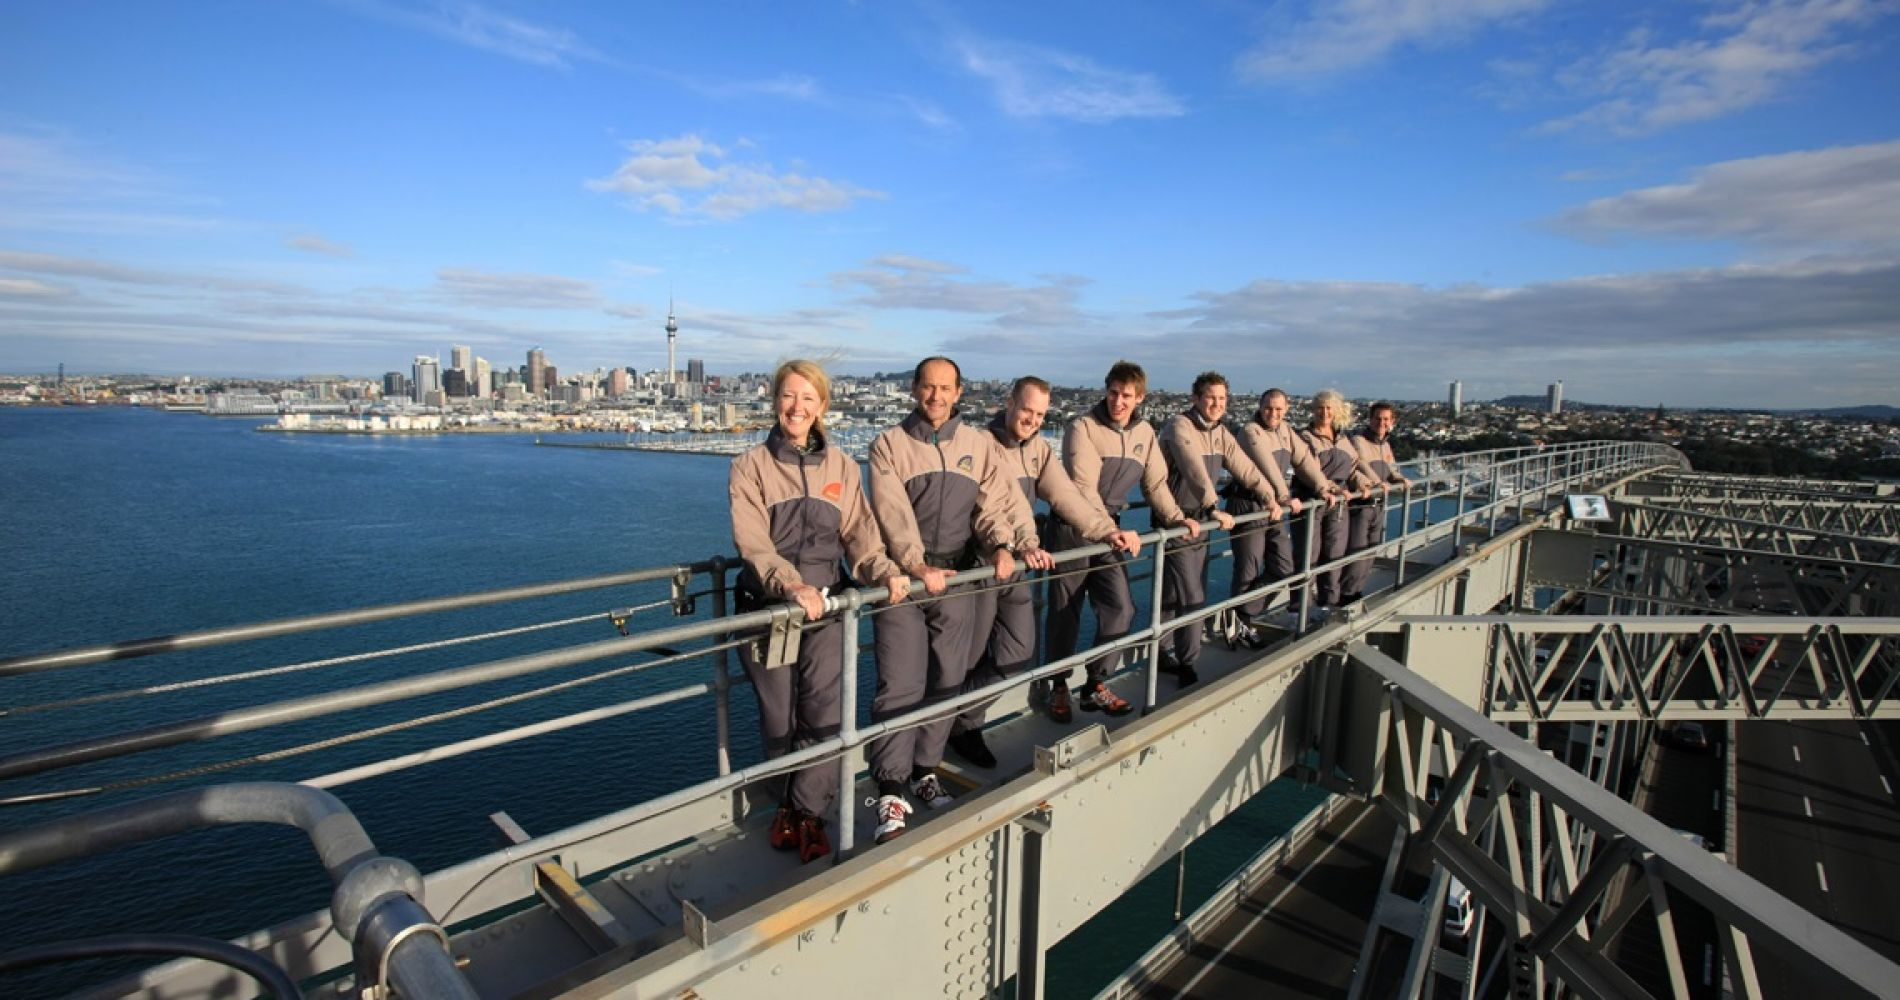 Magnificent Auckland Bridge Climb Tinggly Experience Gifts